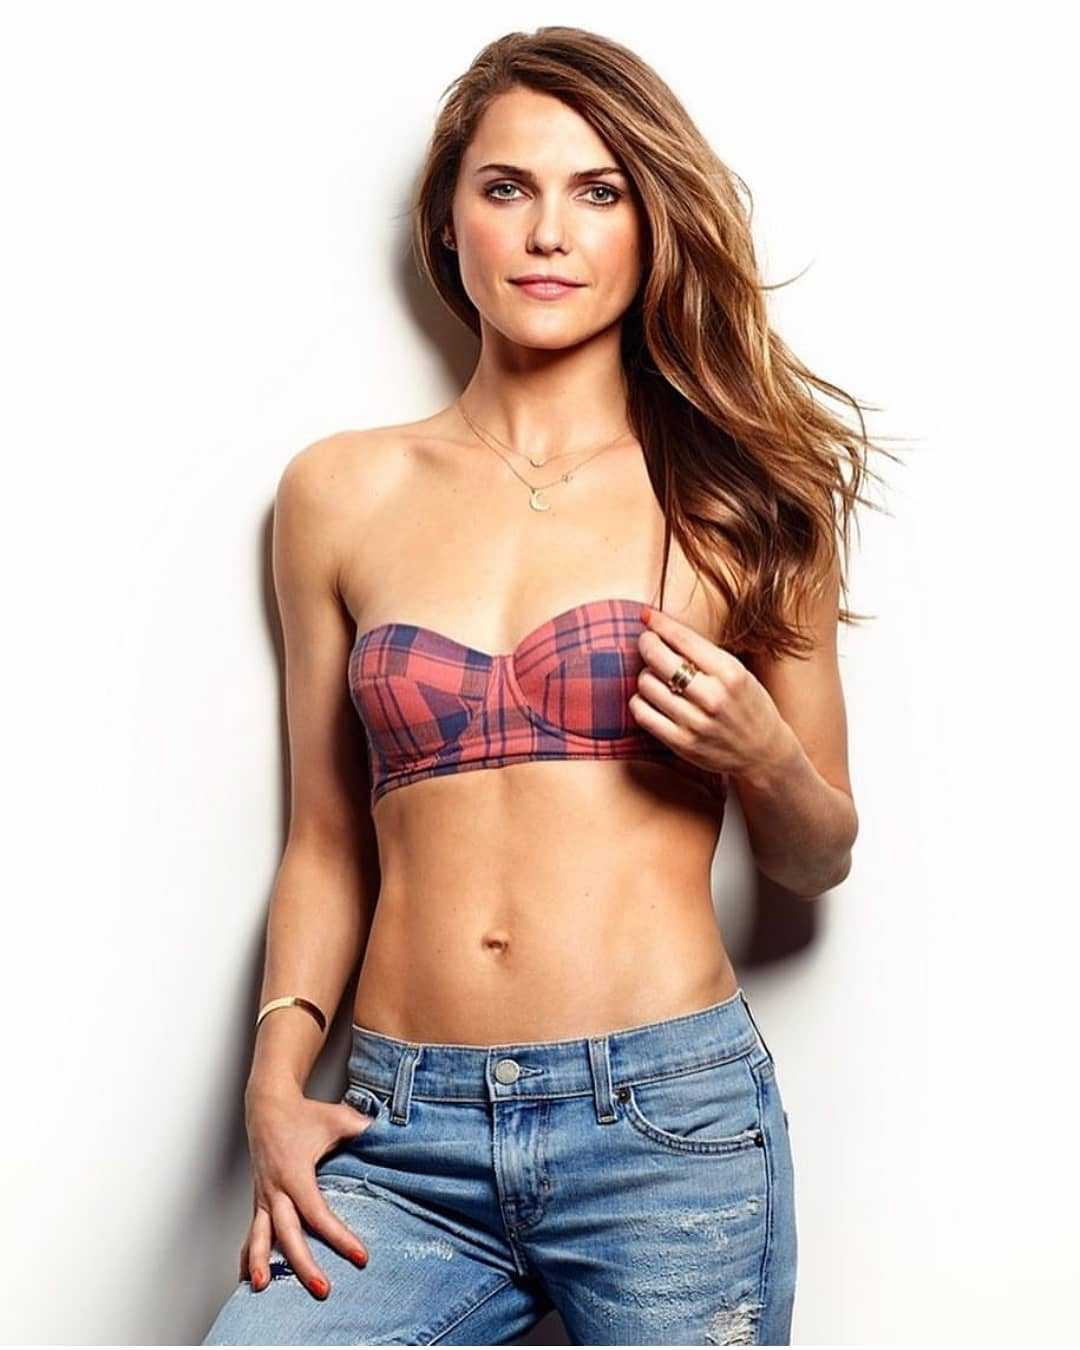 Keri Russell tits pictures